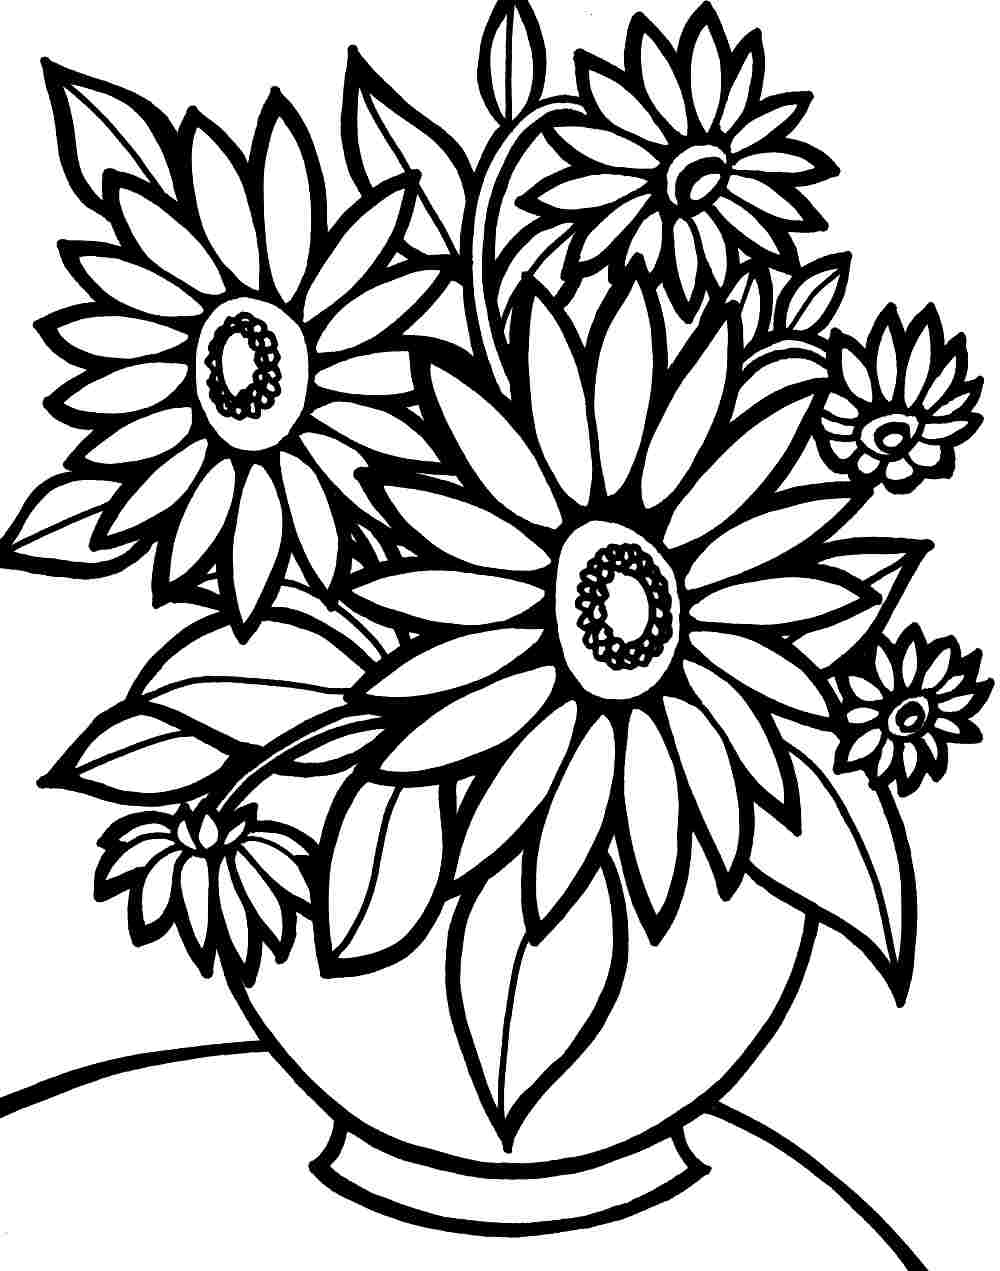 Flower Coloring Pages | Free download best Flower Coloring Pages ...